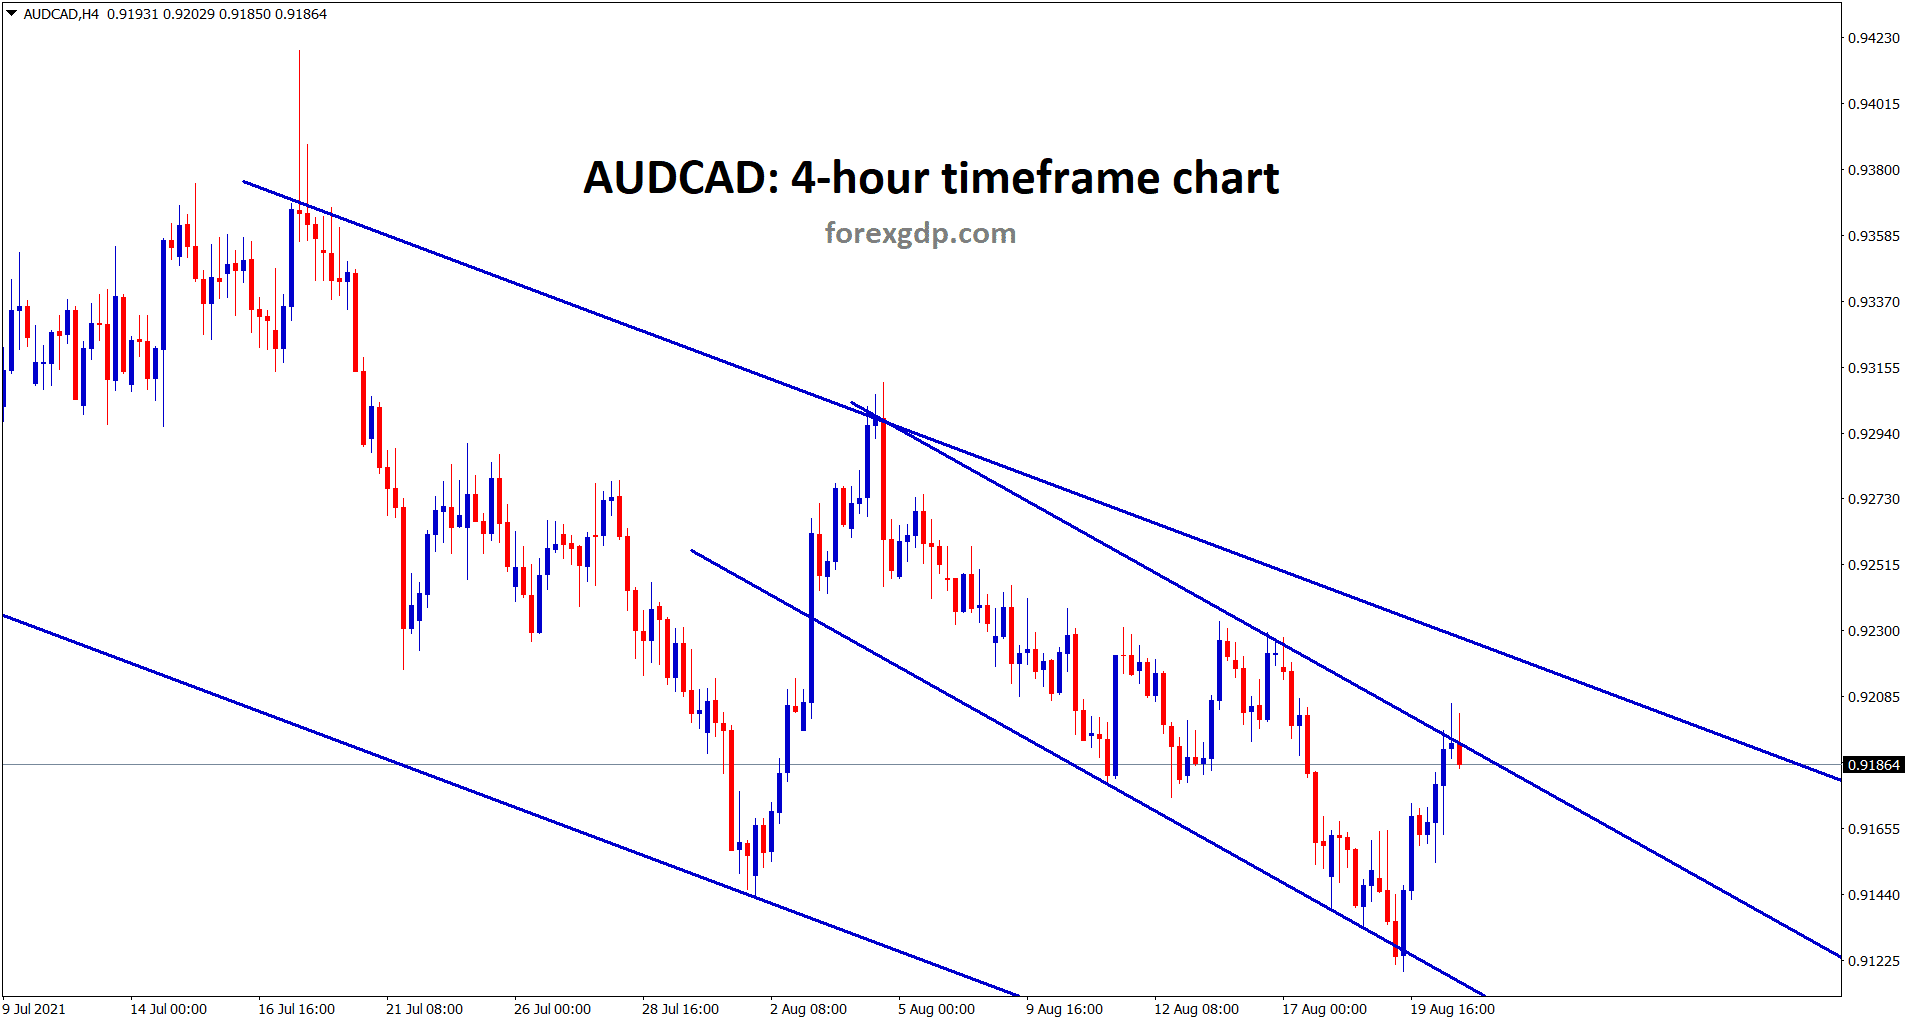 AUDCAD hits the lowe high of the minor descending channel